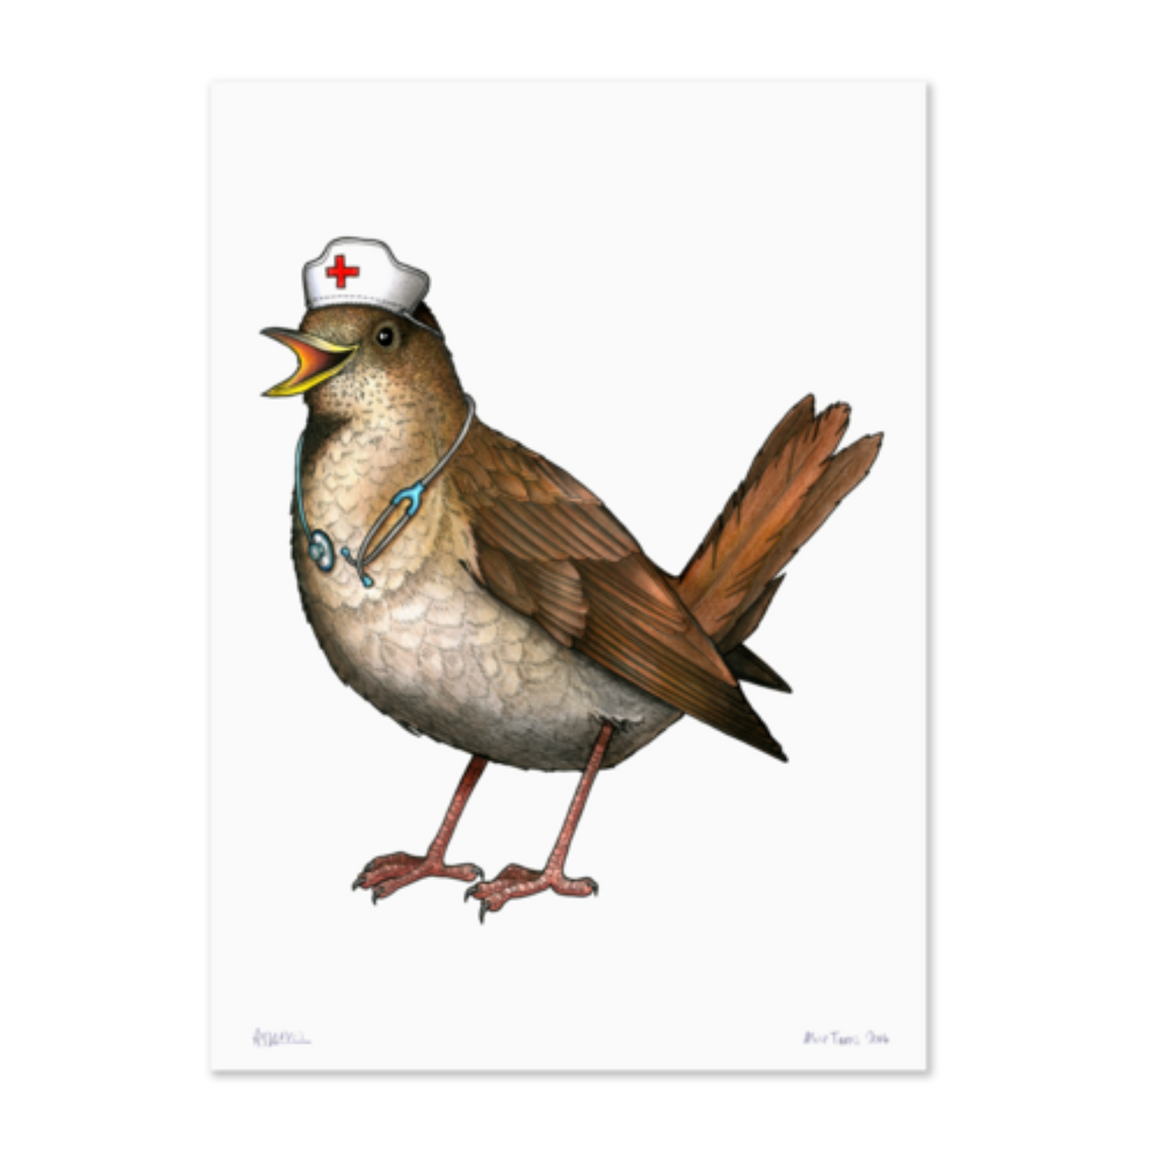 Birds In Hats Print - Nightingale in a Nurse's Cap A4